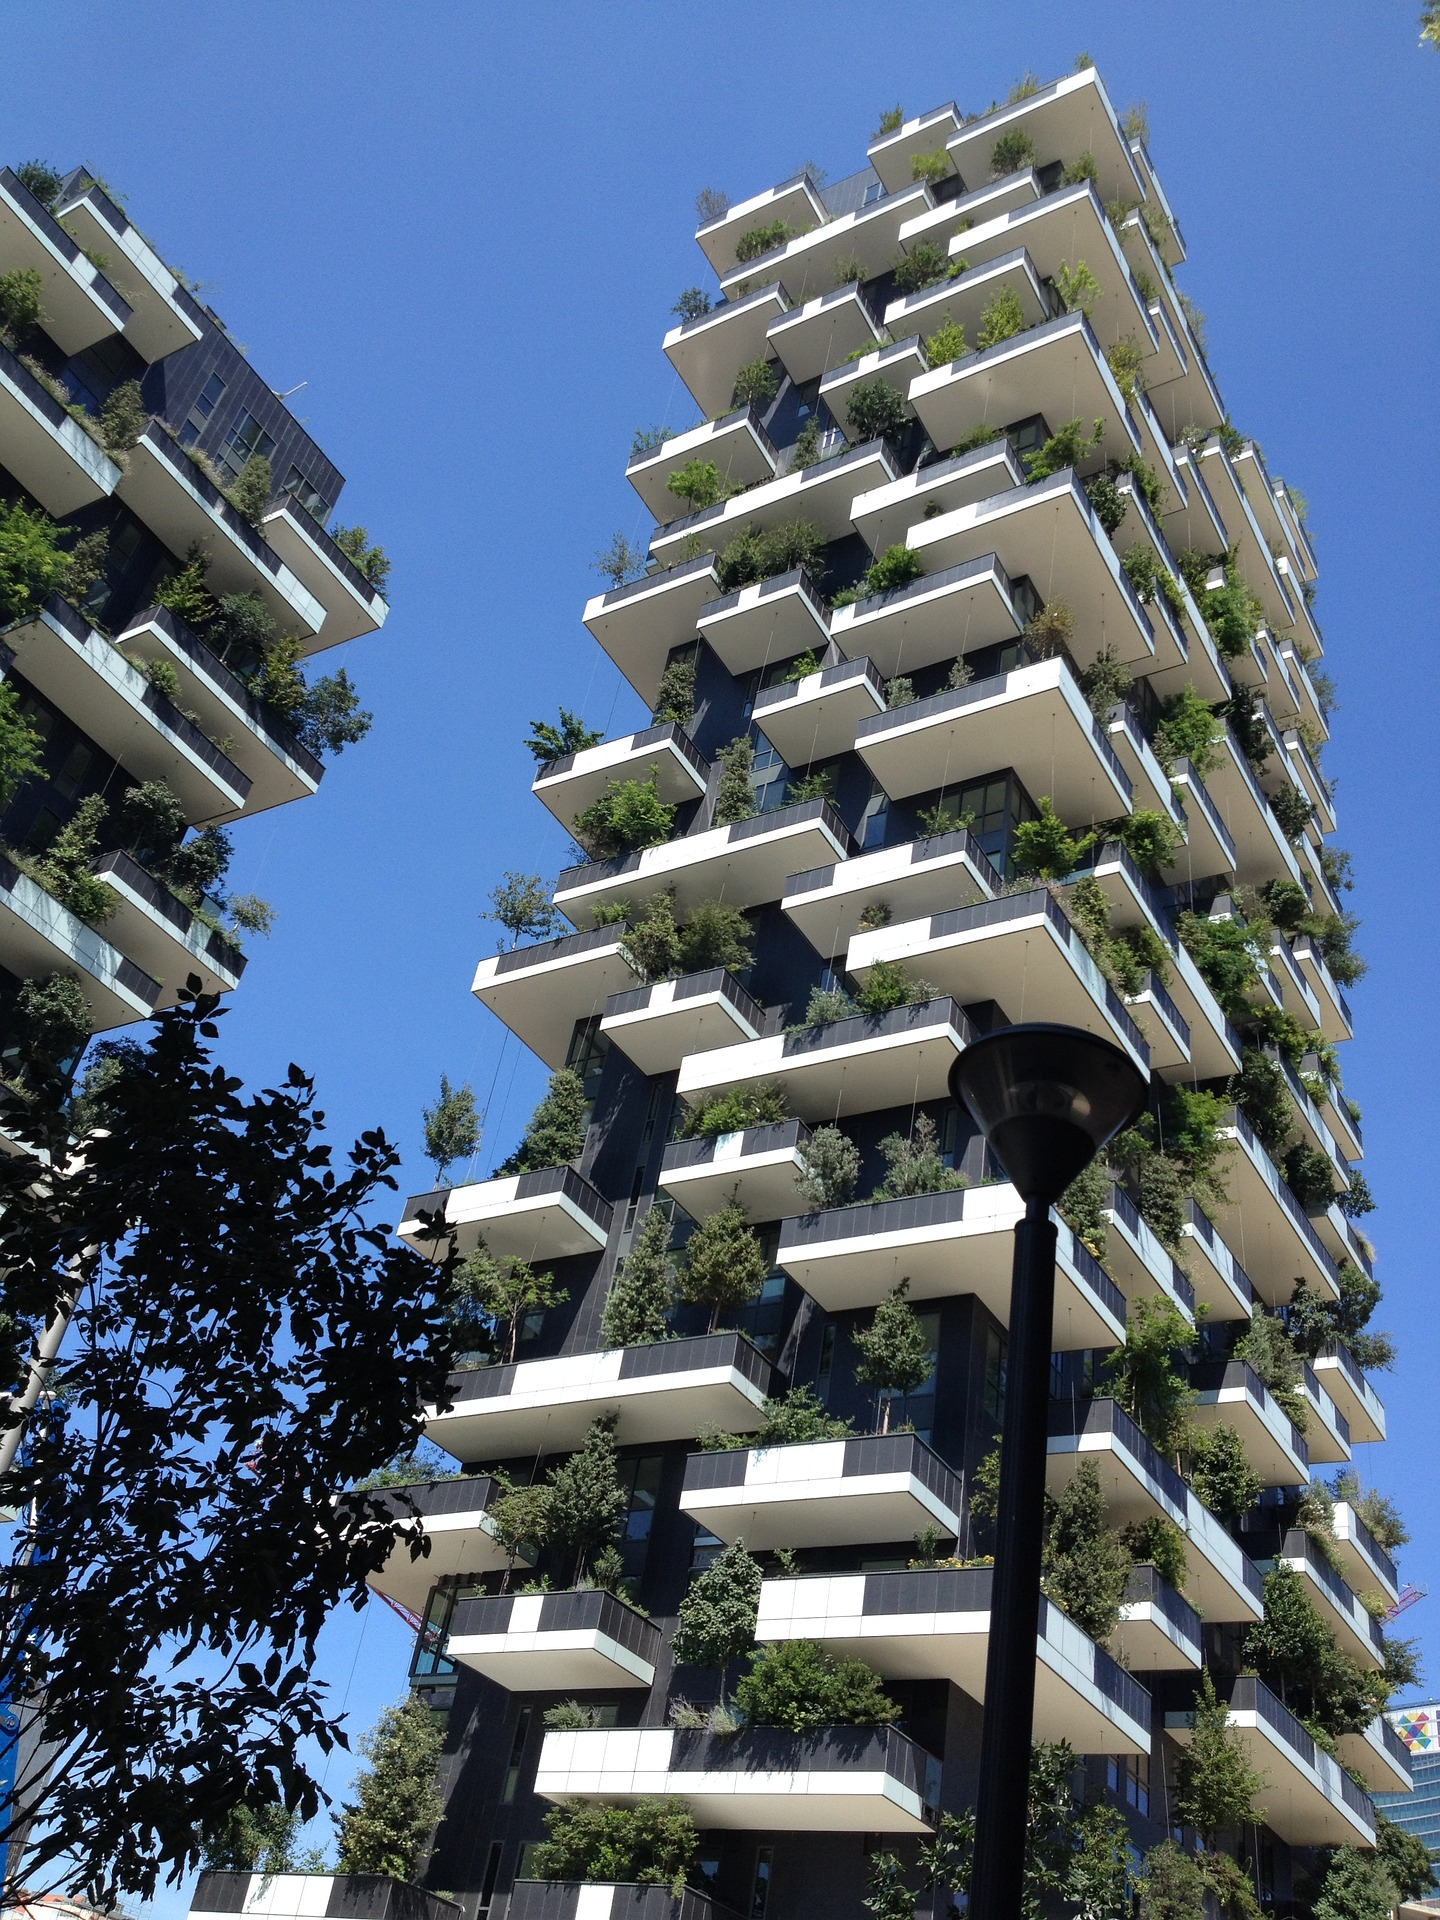 vertical-forest-1791368_1920